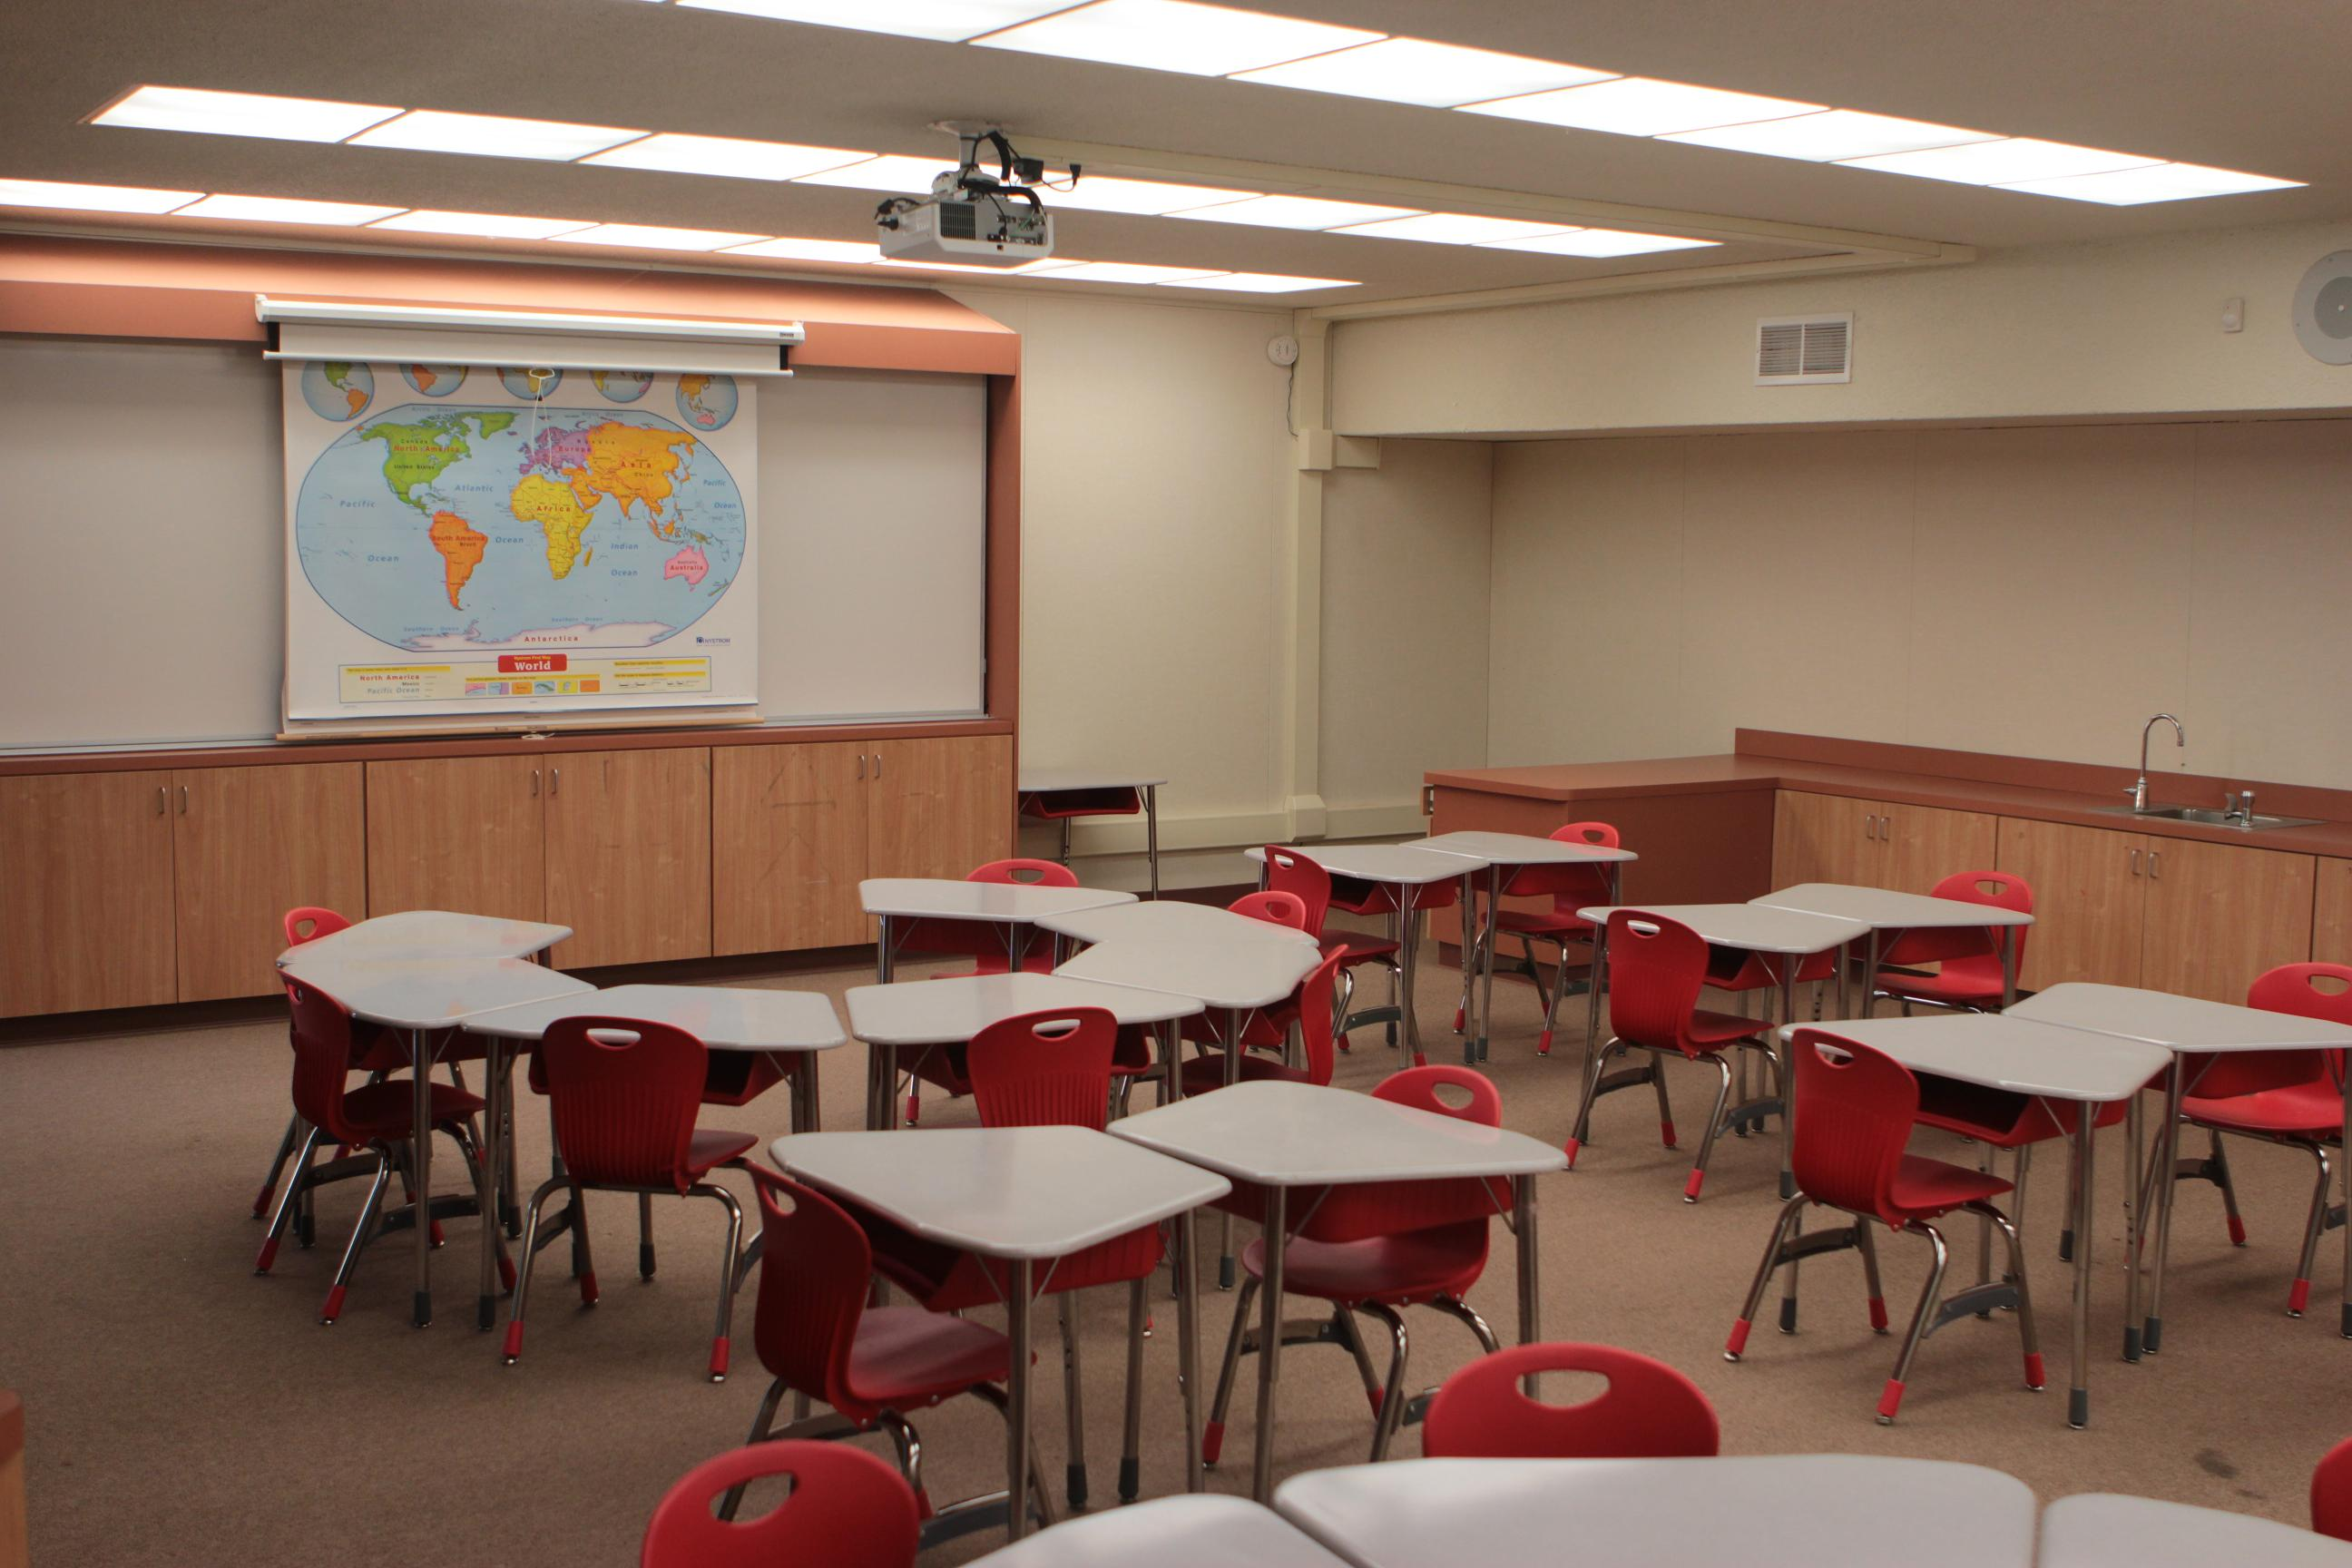 Cushions Round Floor Cushions Set Of 4 3460 Mo besides Deep Learning 24650492 also Round Restaurant Table Round Black Base P also Cornell Notes 2nd Semester moreover Parramatta Map. on seminar chairs